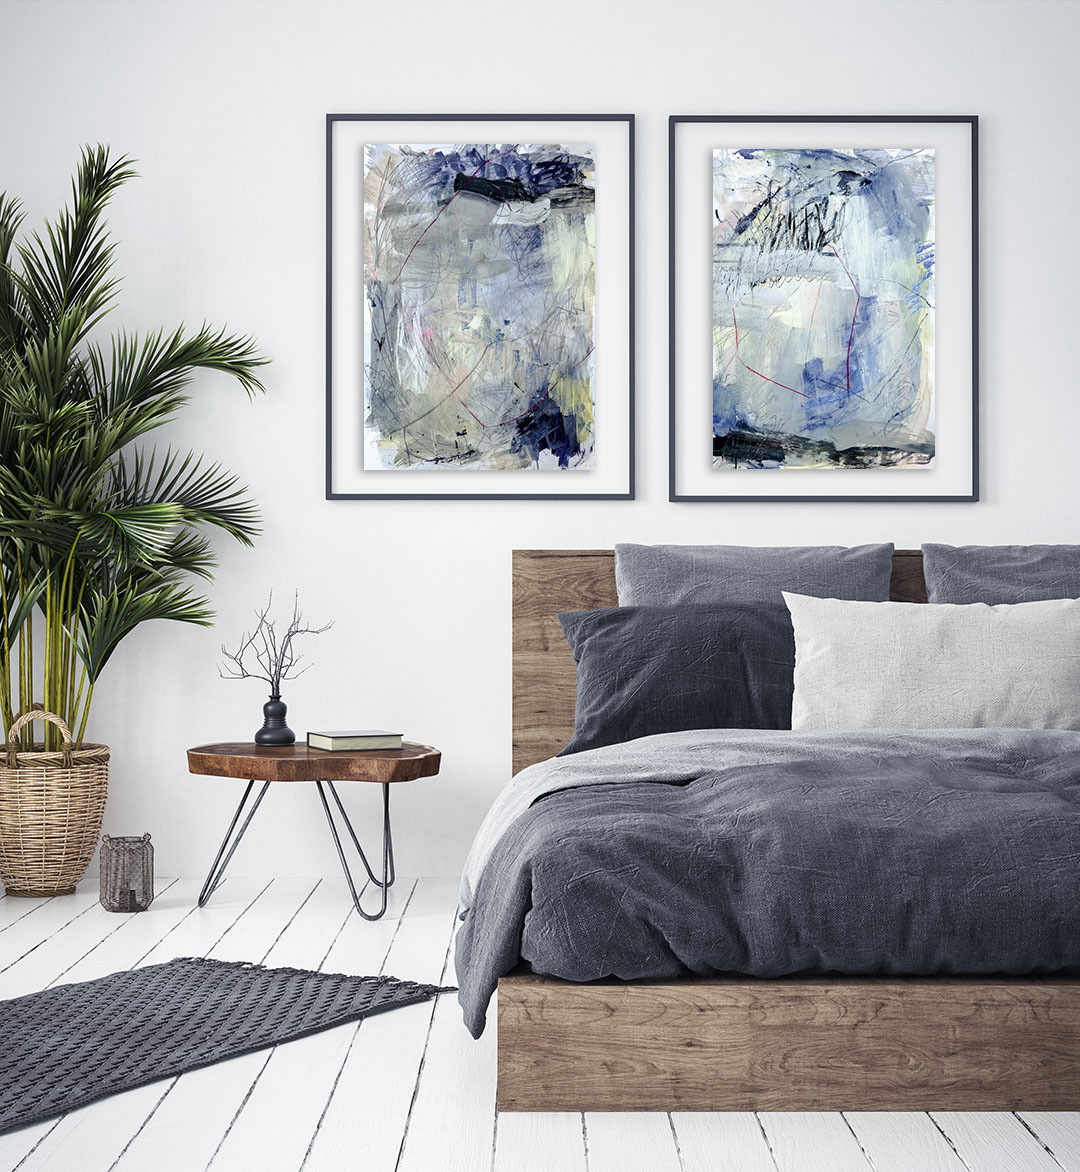 Blue Lagoon no 2 & 4, blue abstract paintings on paper by Wiktoria Florek